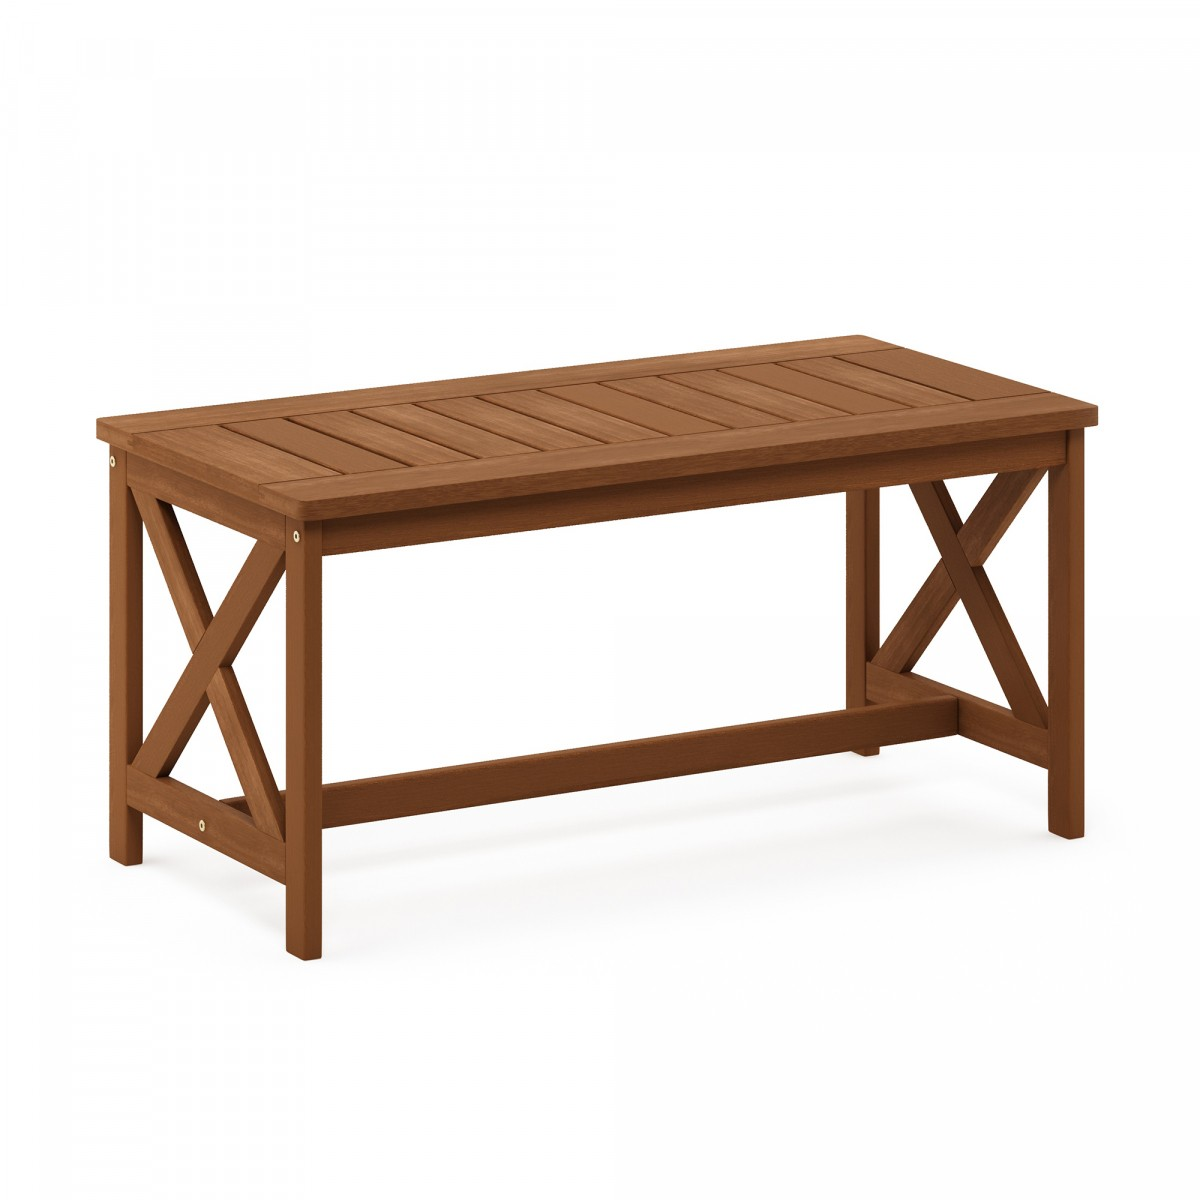 Furinno Tioman Hardwood Coffee Table with X Leg in Teak ...